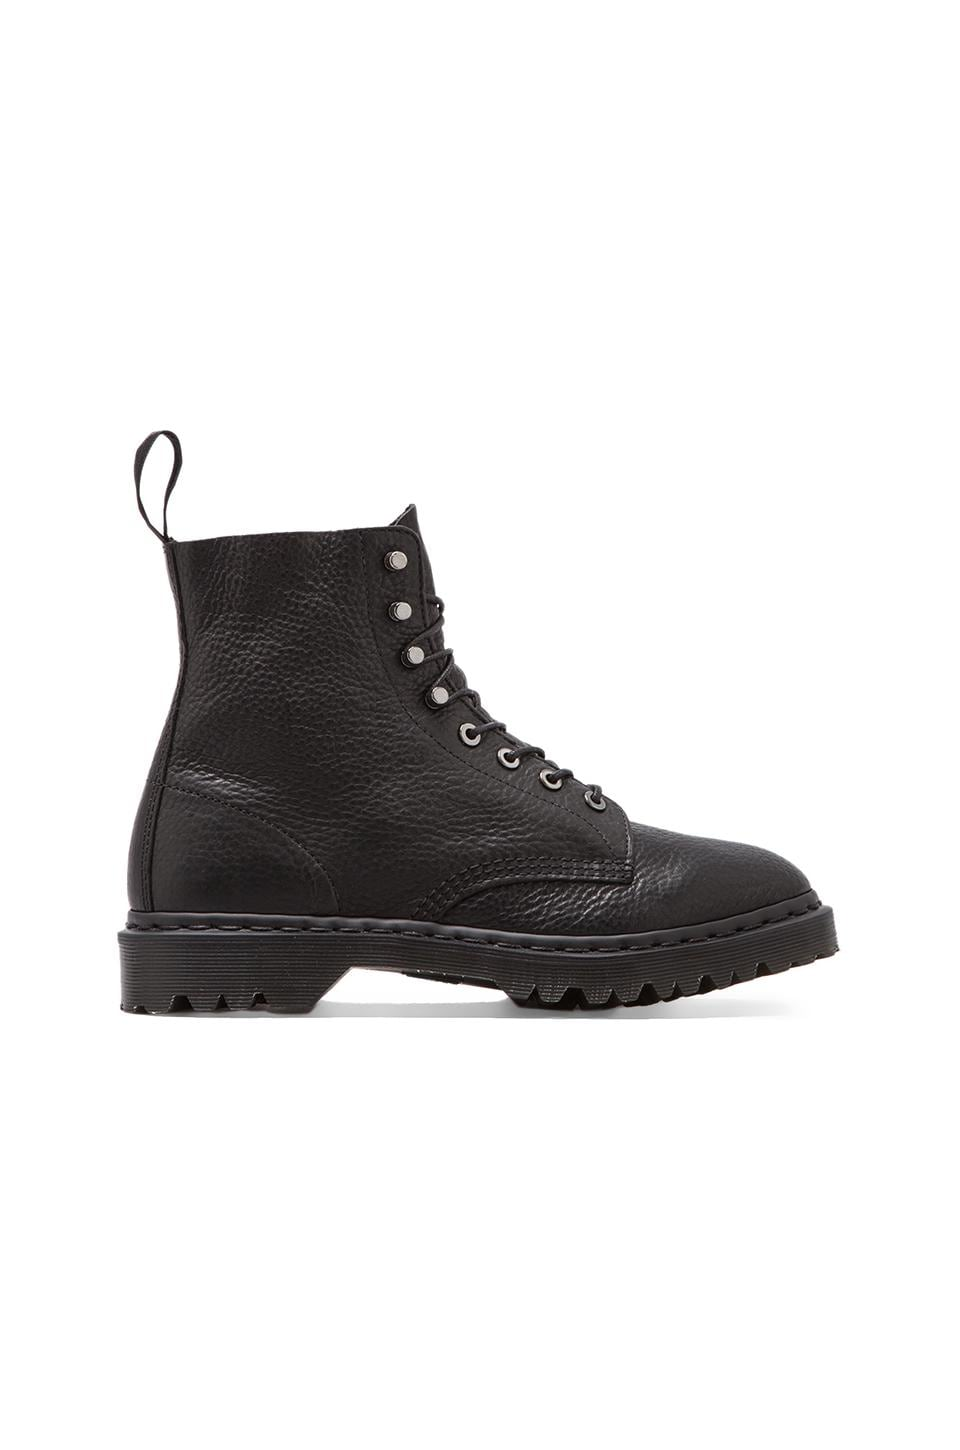 Dr. Martens Hadley 8-Tie Boot in Black